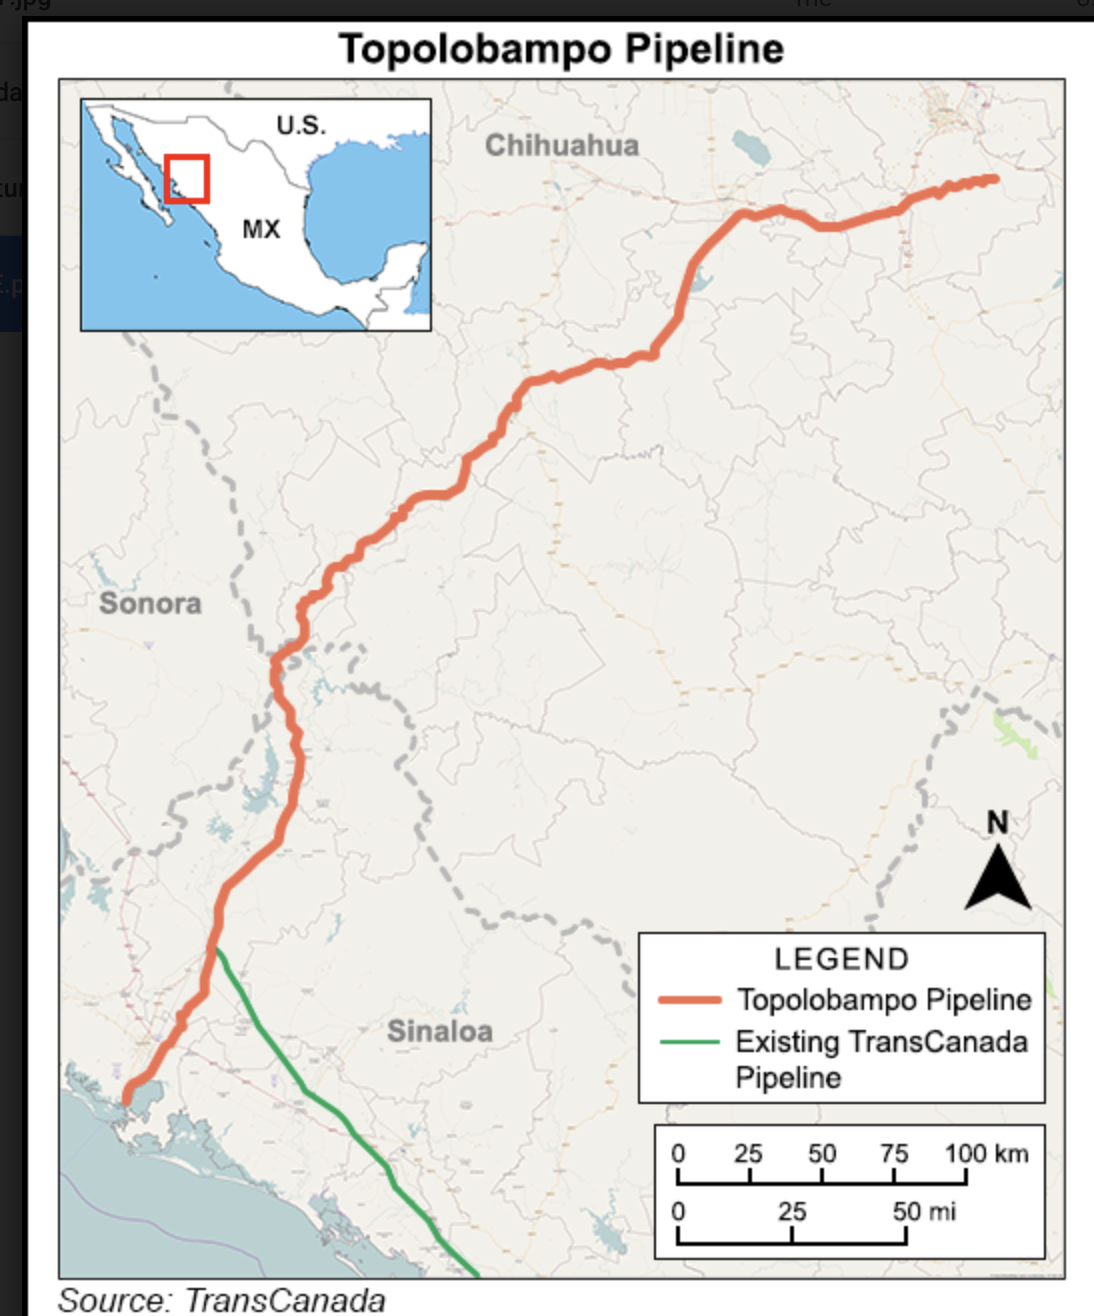 Topolobampo Pipeline Map